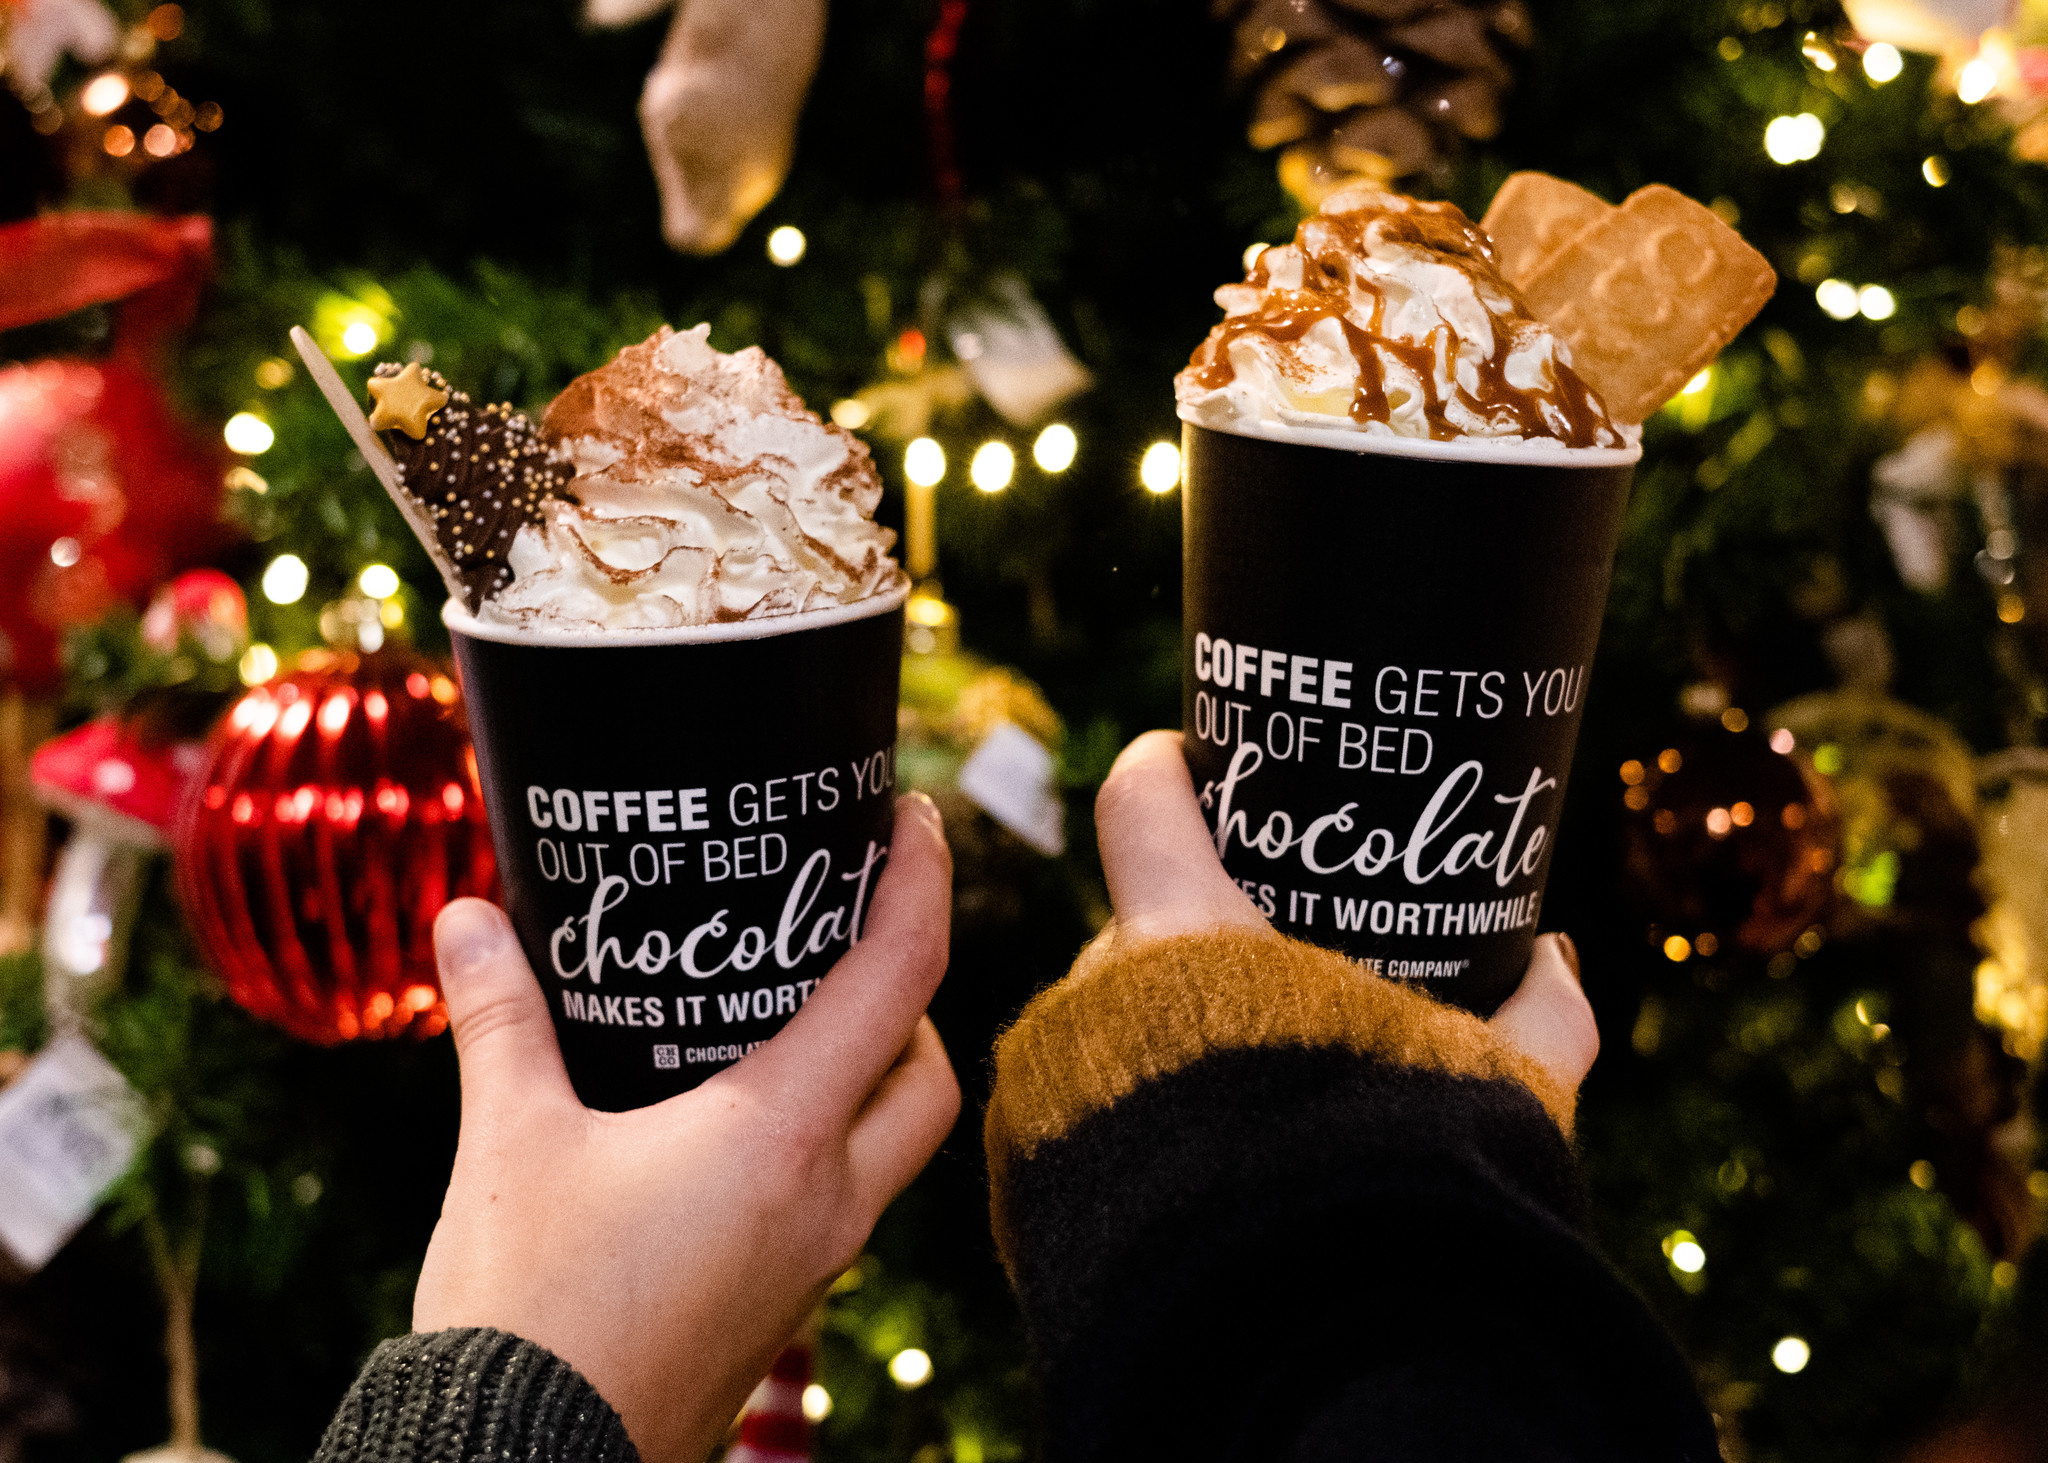 All I want for Christmas... is chocolate!